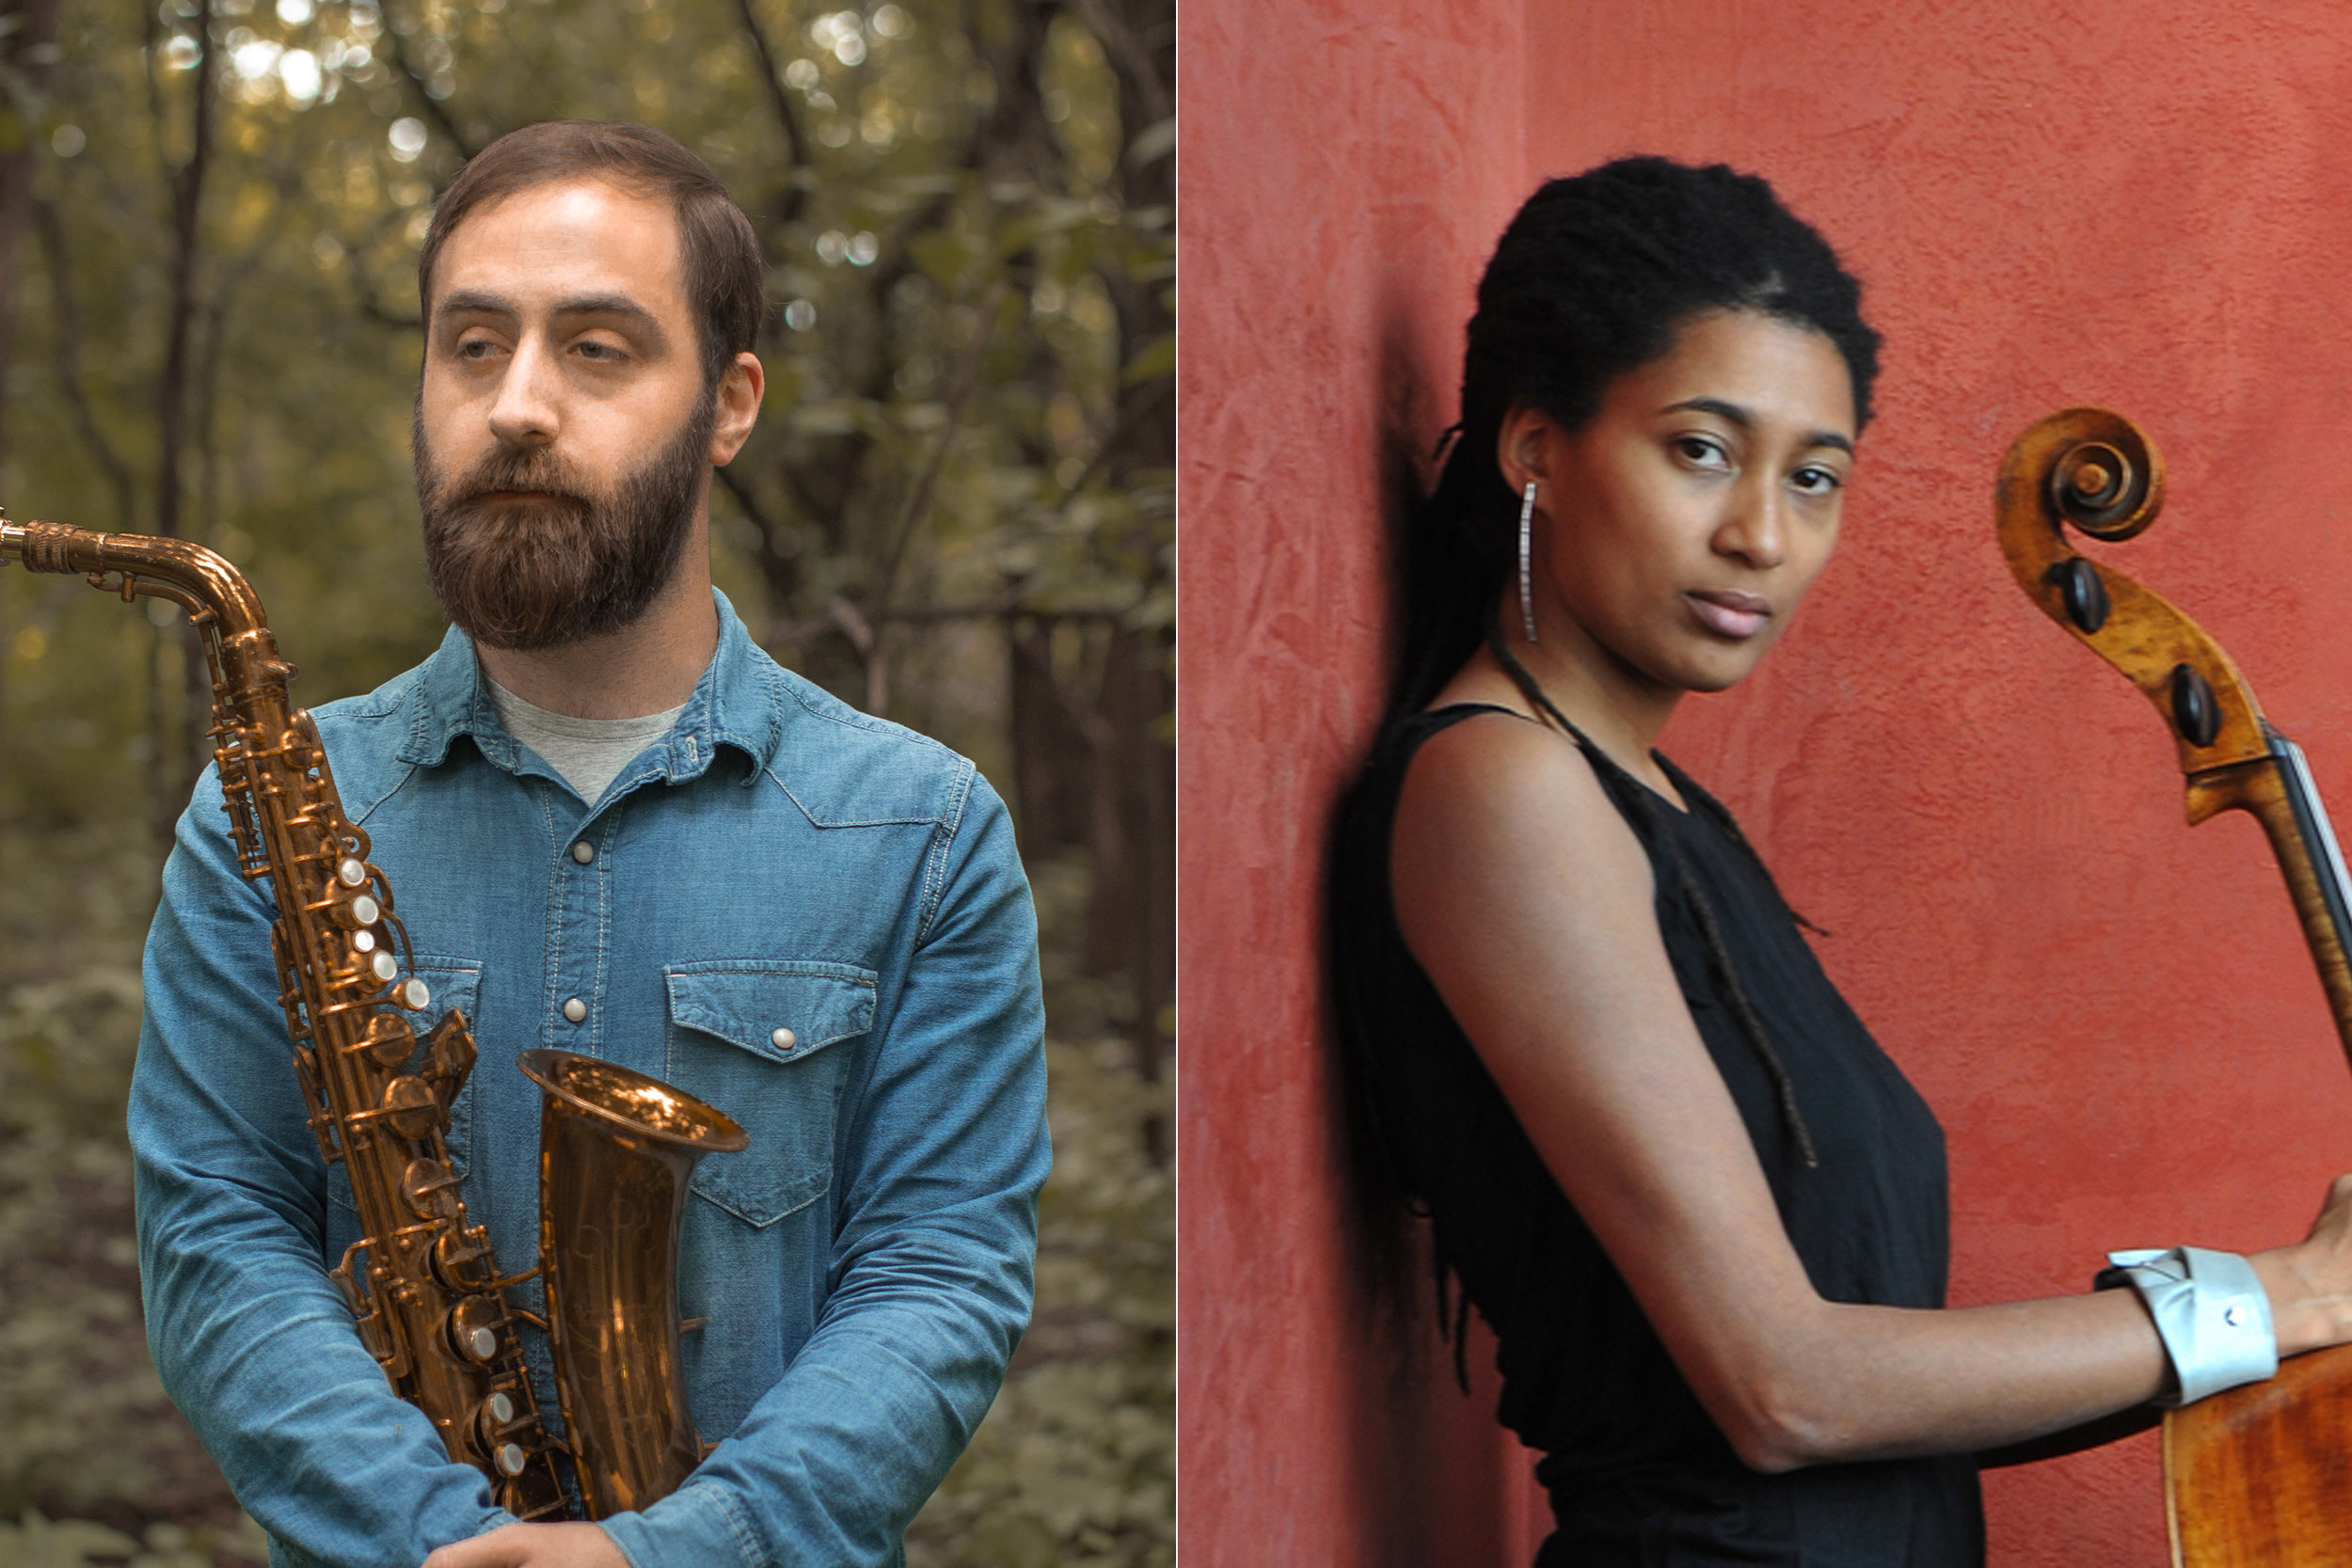 Nick Mazzarella/Tomeka Reid Duo - Saturday, September 23, 4;30-5:30pmDuSable Museum